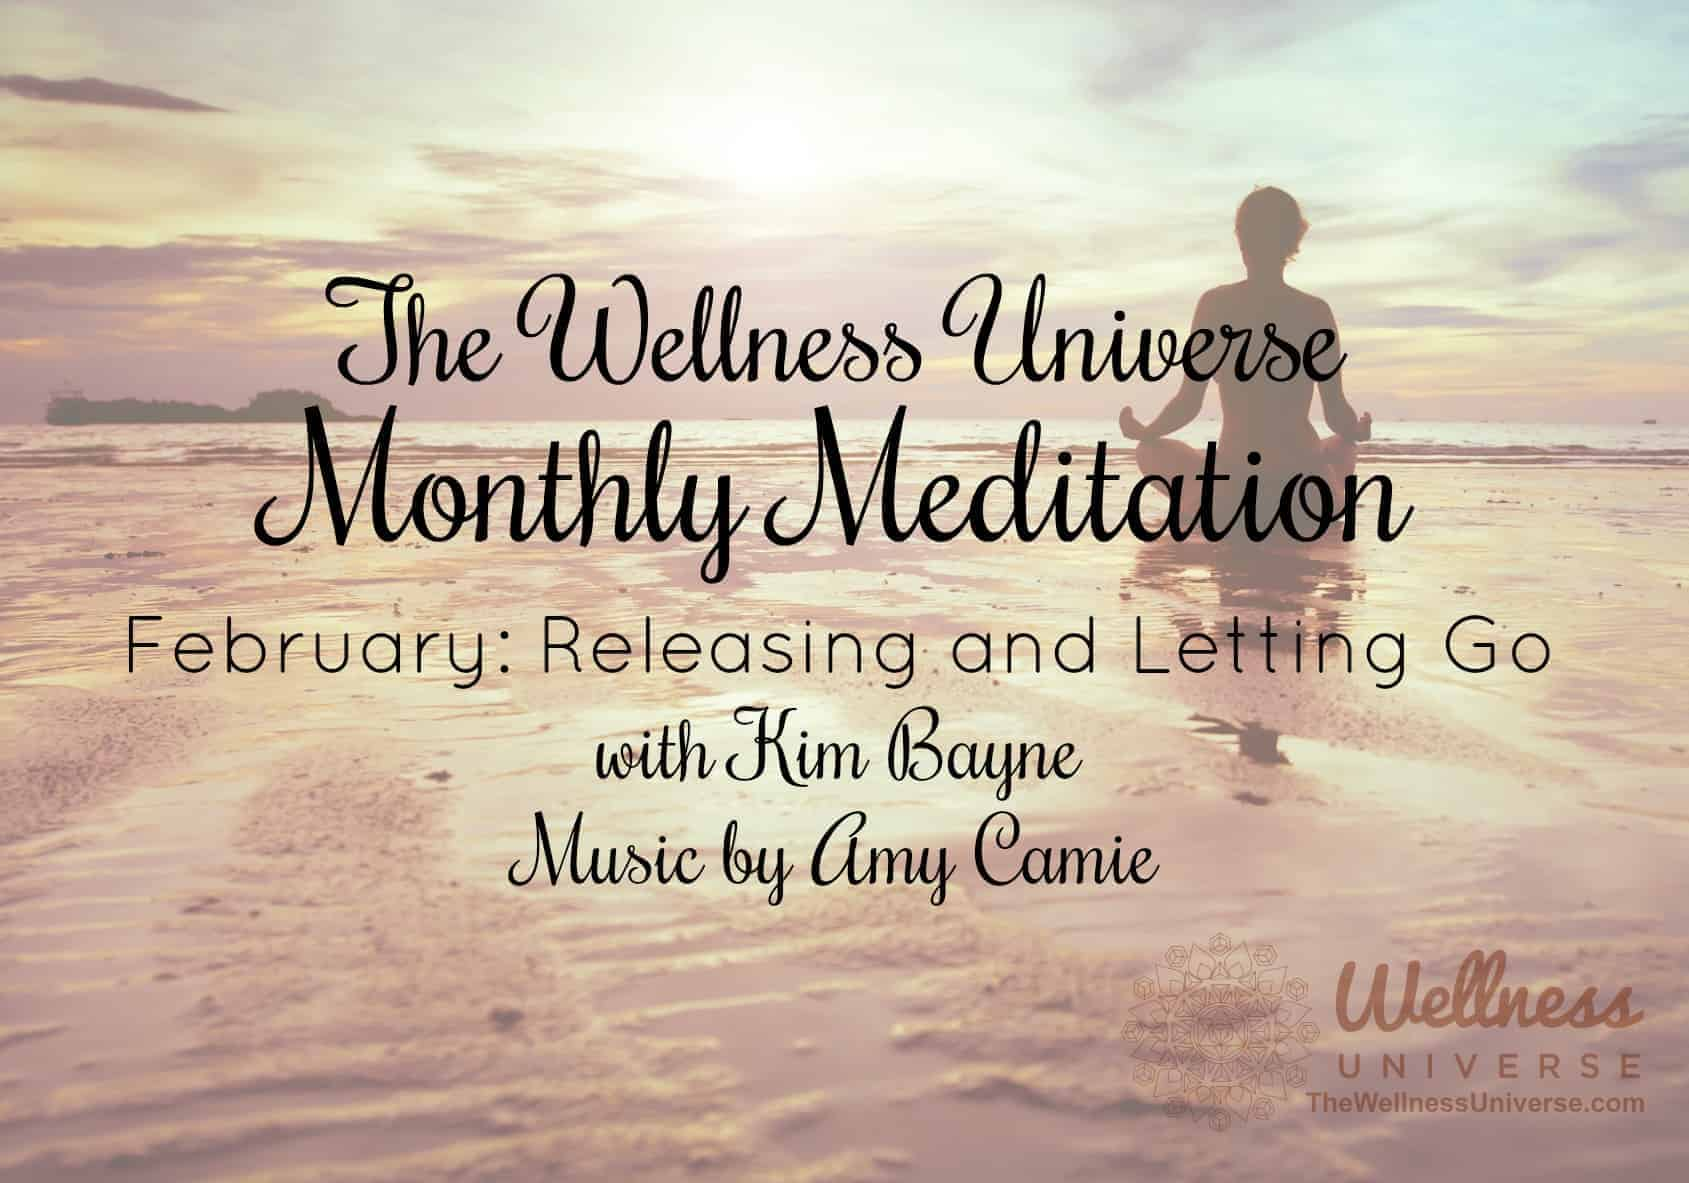 We are kicking off a series of LIVE virtual meditations in a few weeks. They will be free and each w